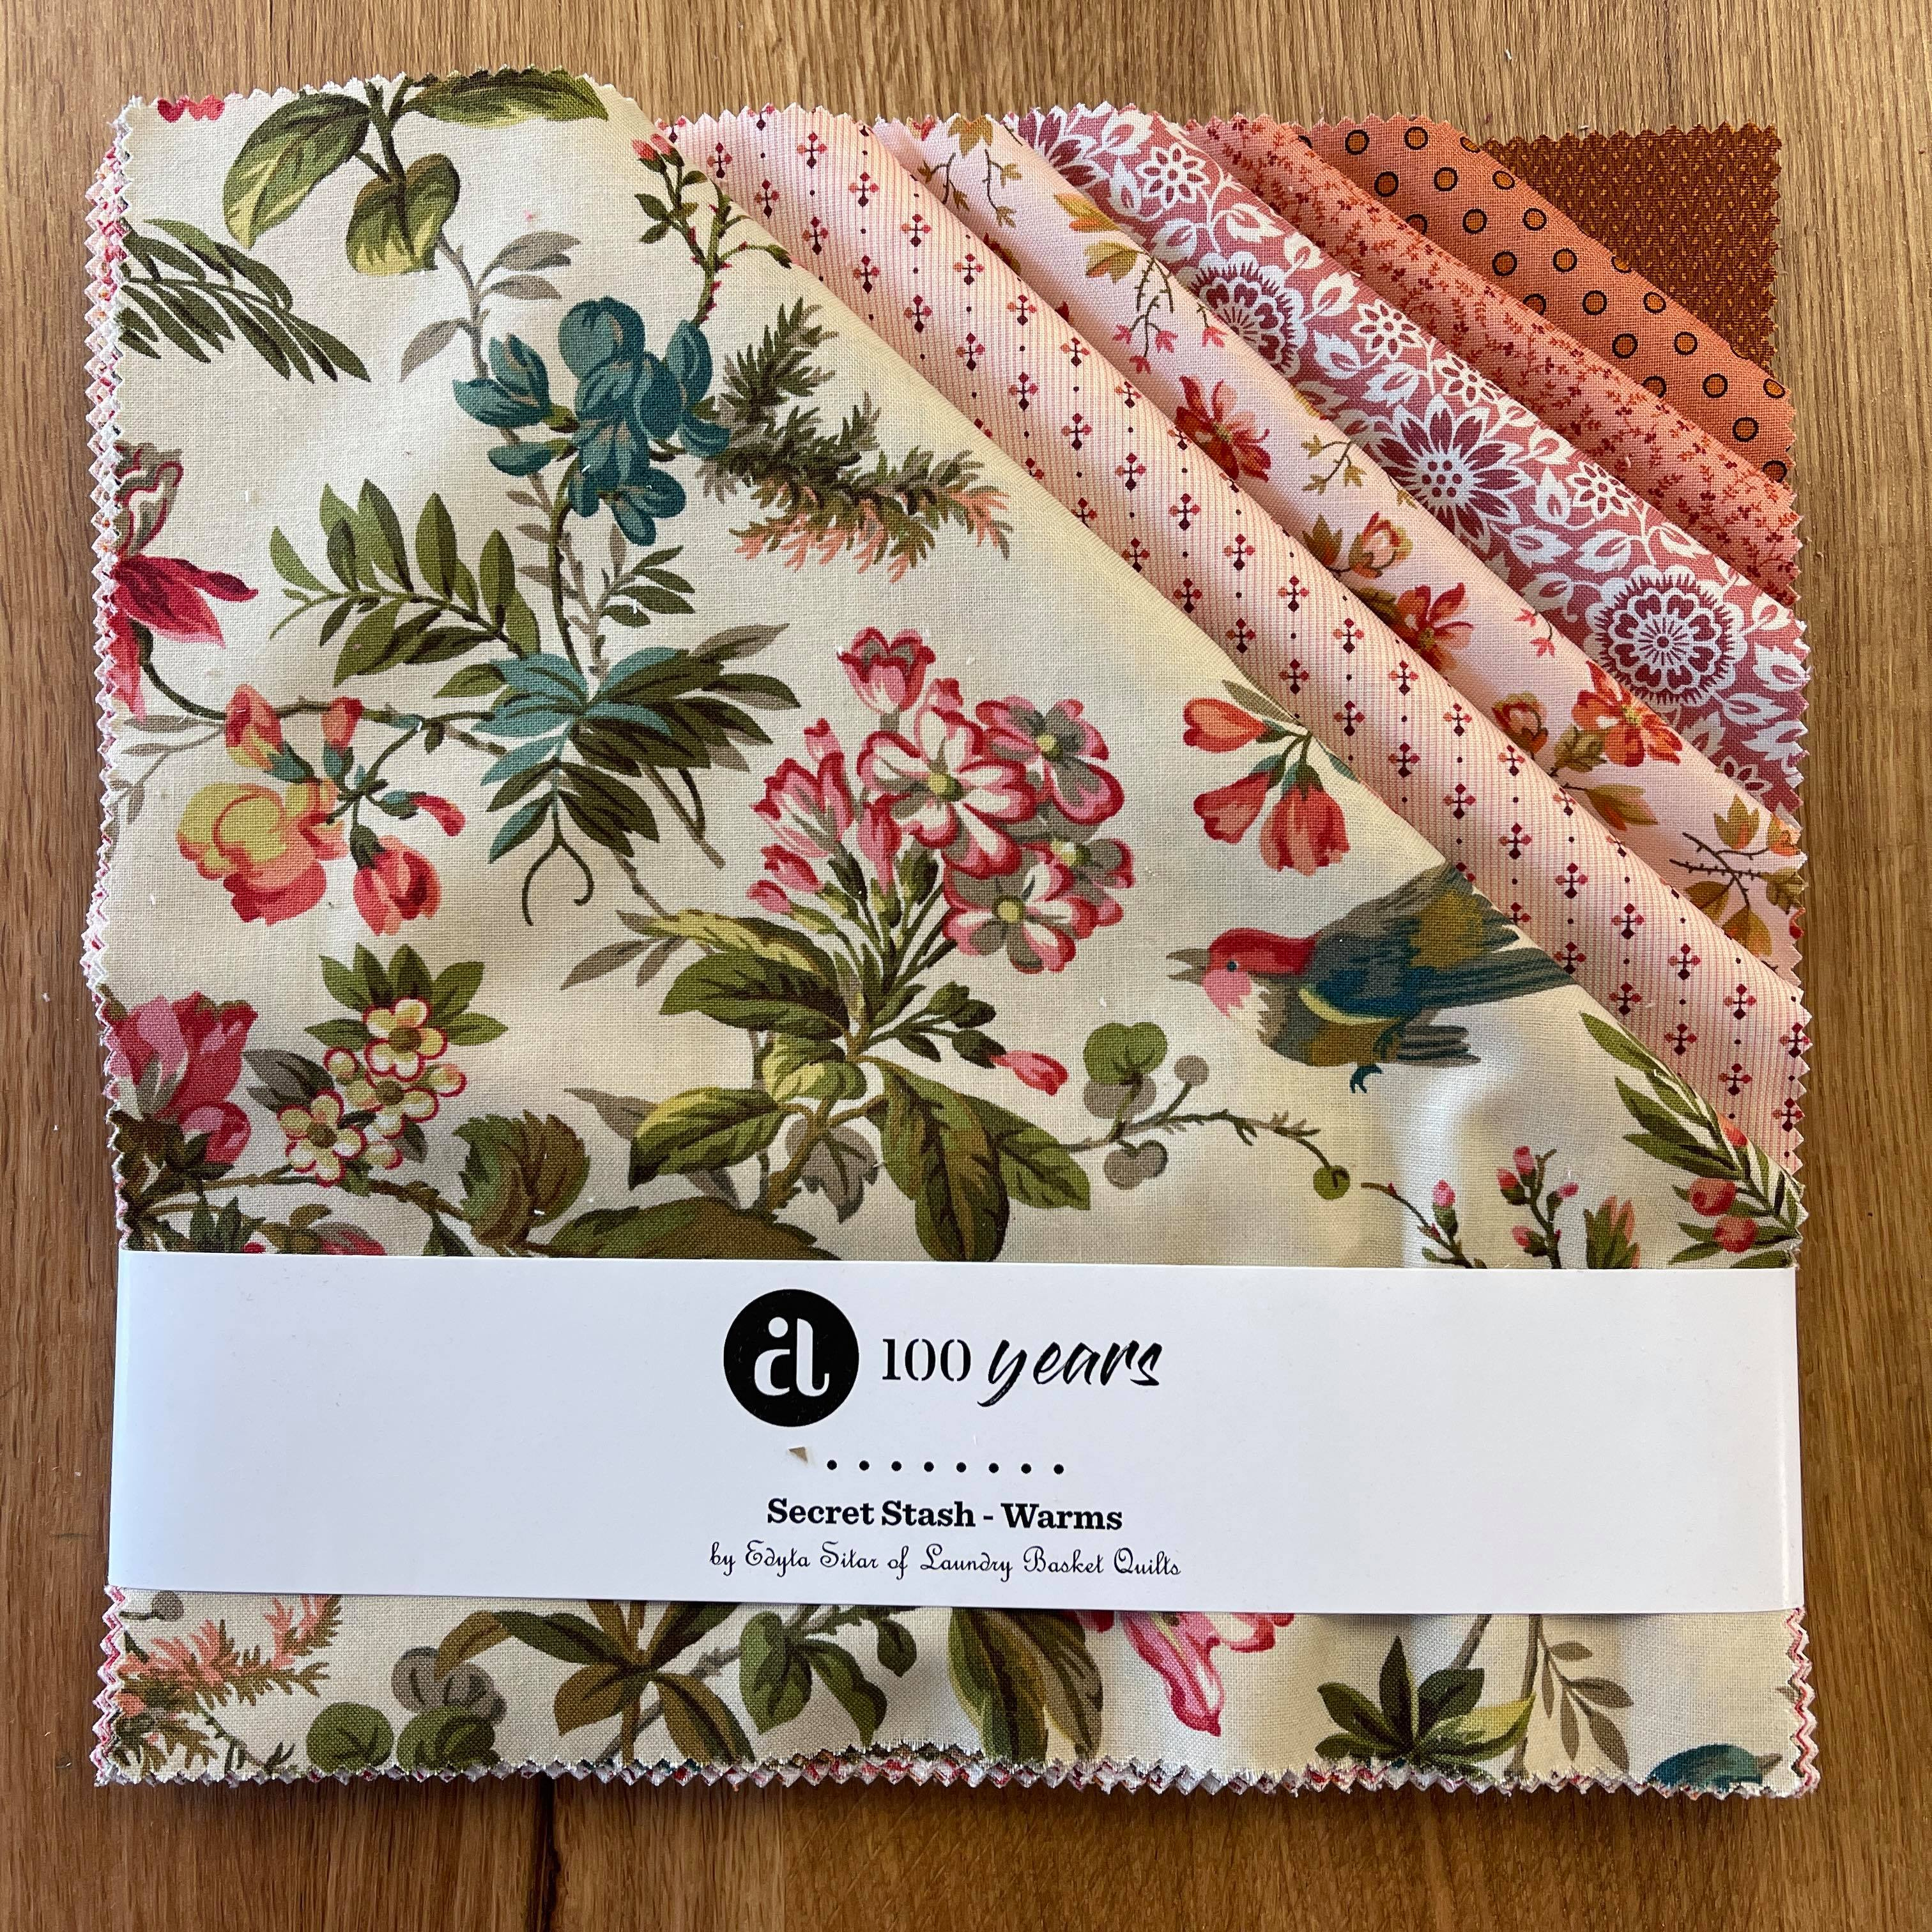 Secret Stash - Warm Layer Cake 42pc/bundle - By Laundry Basket Quilts For Andover Fabrics